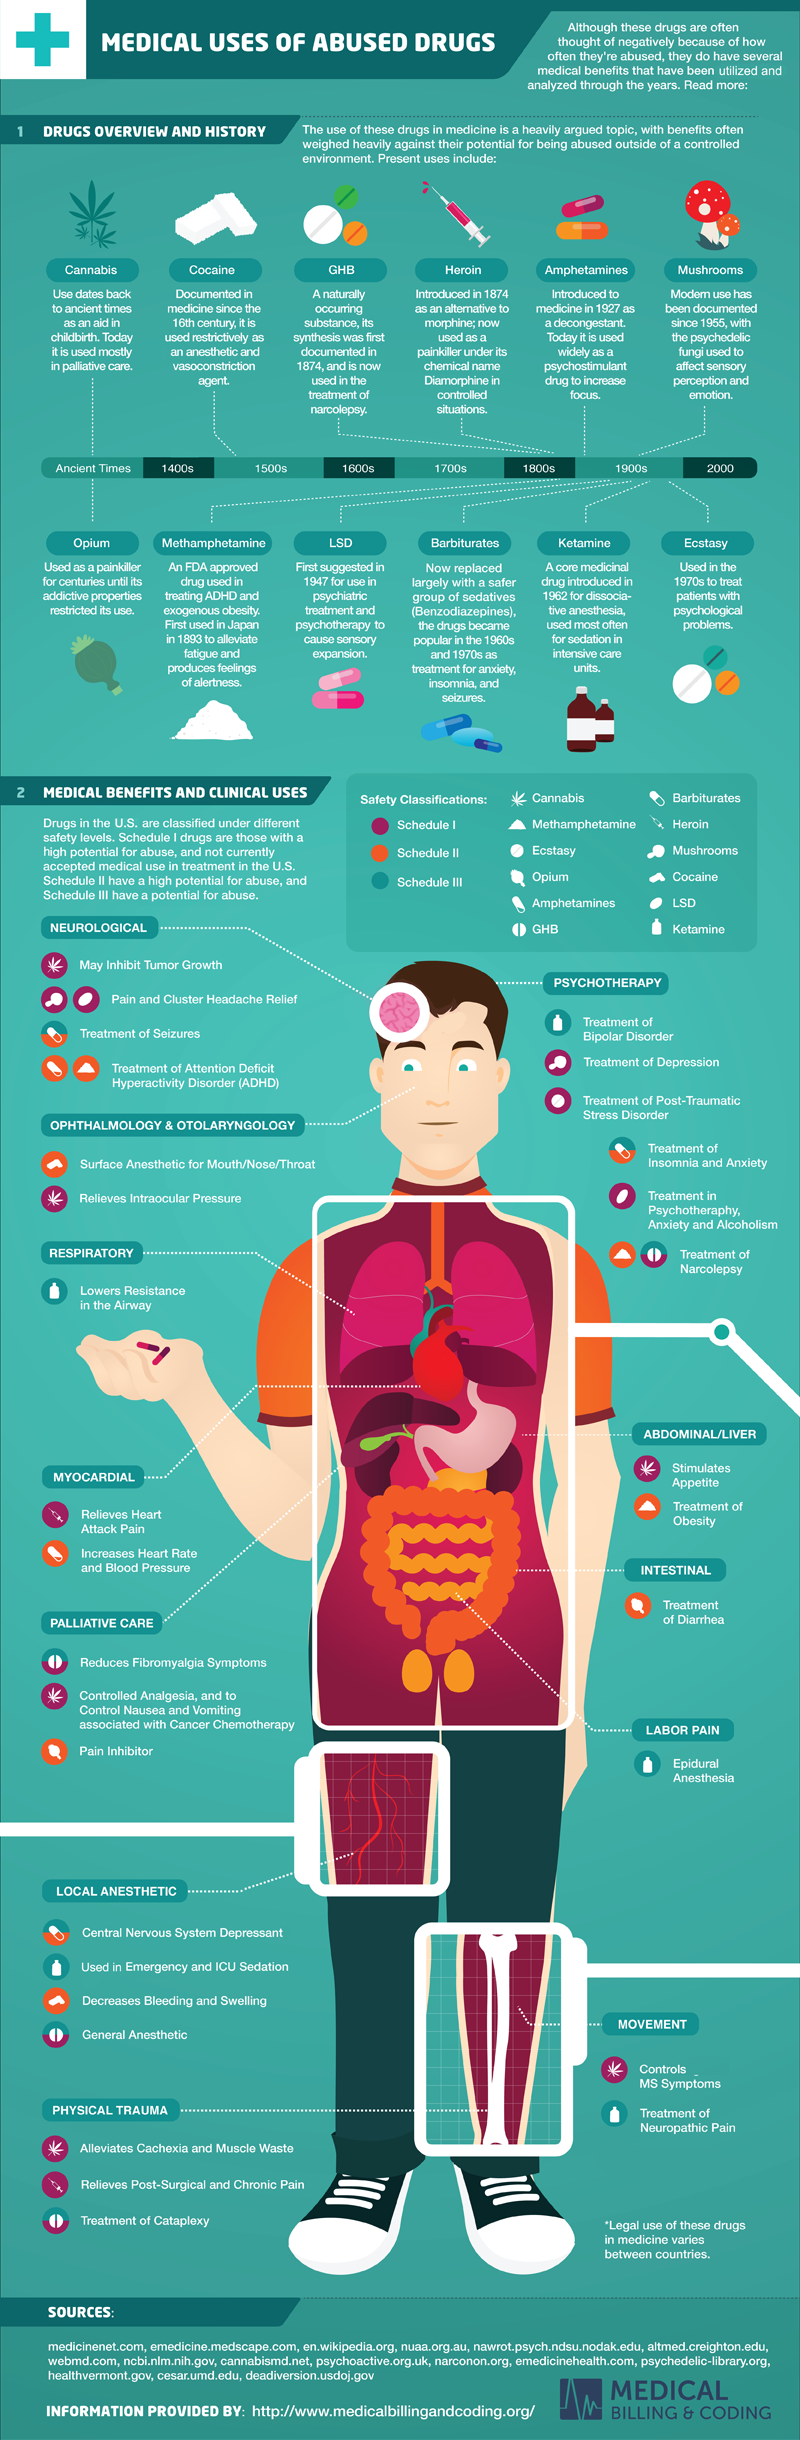 Medical uses of abused drugs infographic the weed blog blog medical uses of abused drugs infographic the weed blog blog xflitez Image collections